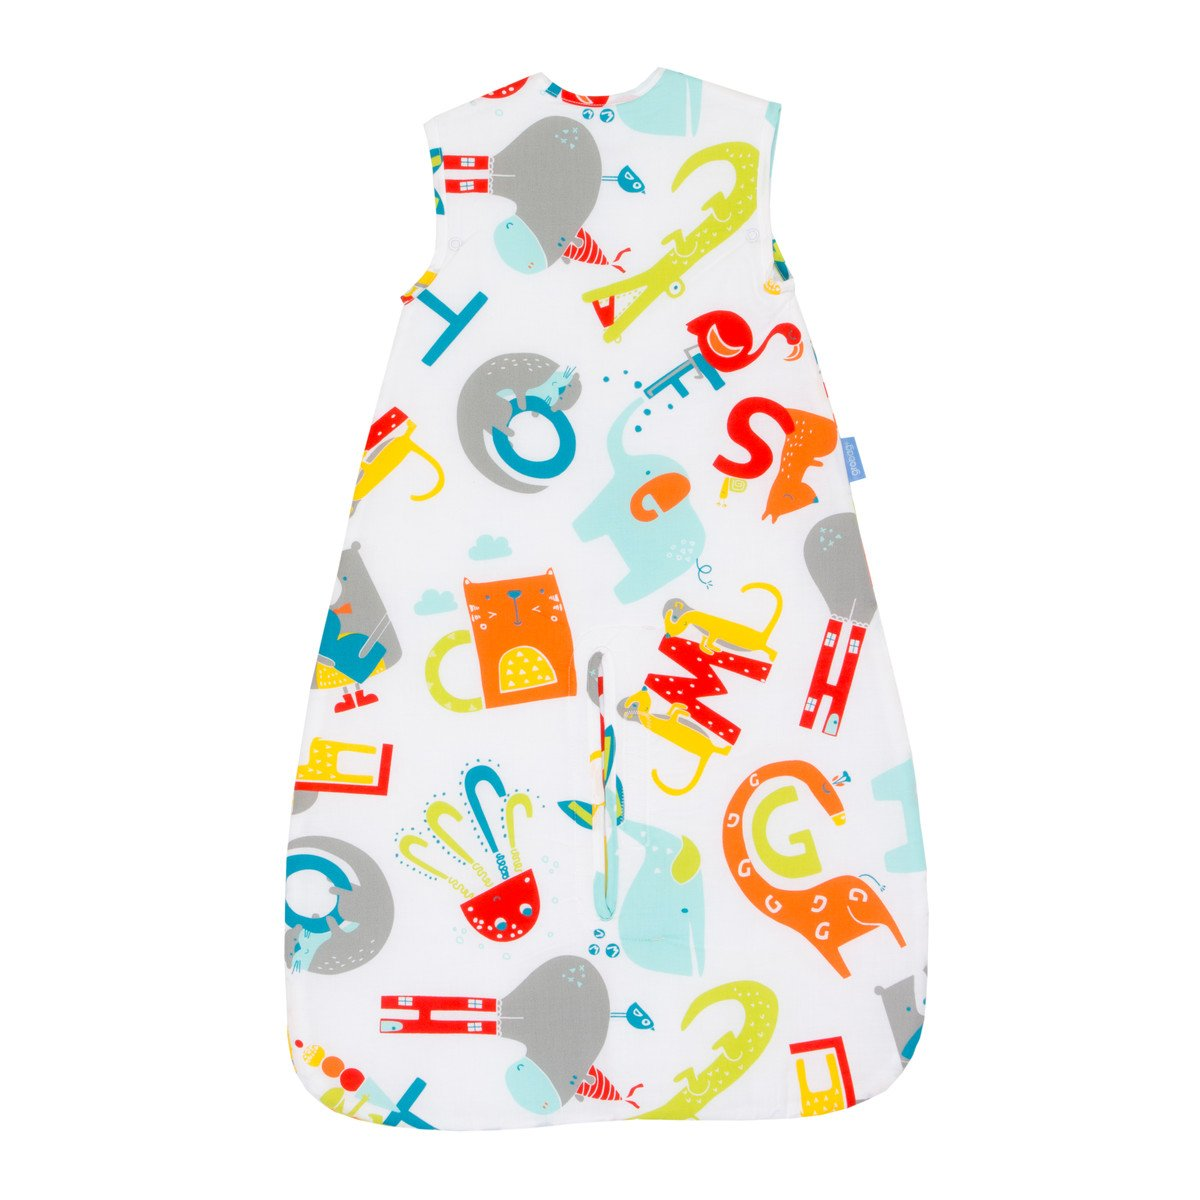 Grobag Travel Baby Sleeping Bag - E is for Elephant 2.5 Tog (18-36 Months) by grobag (Image #4)